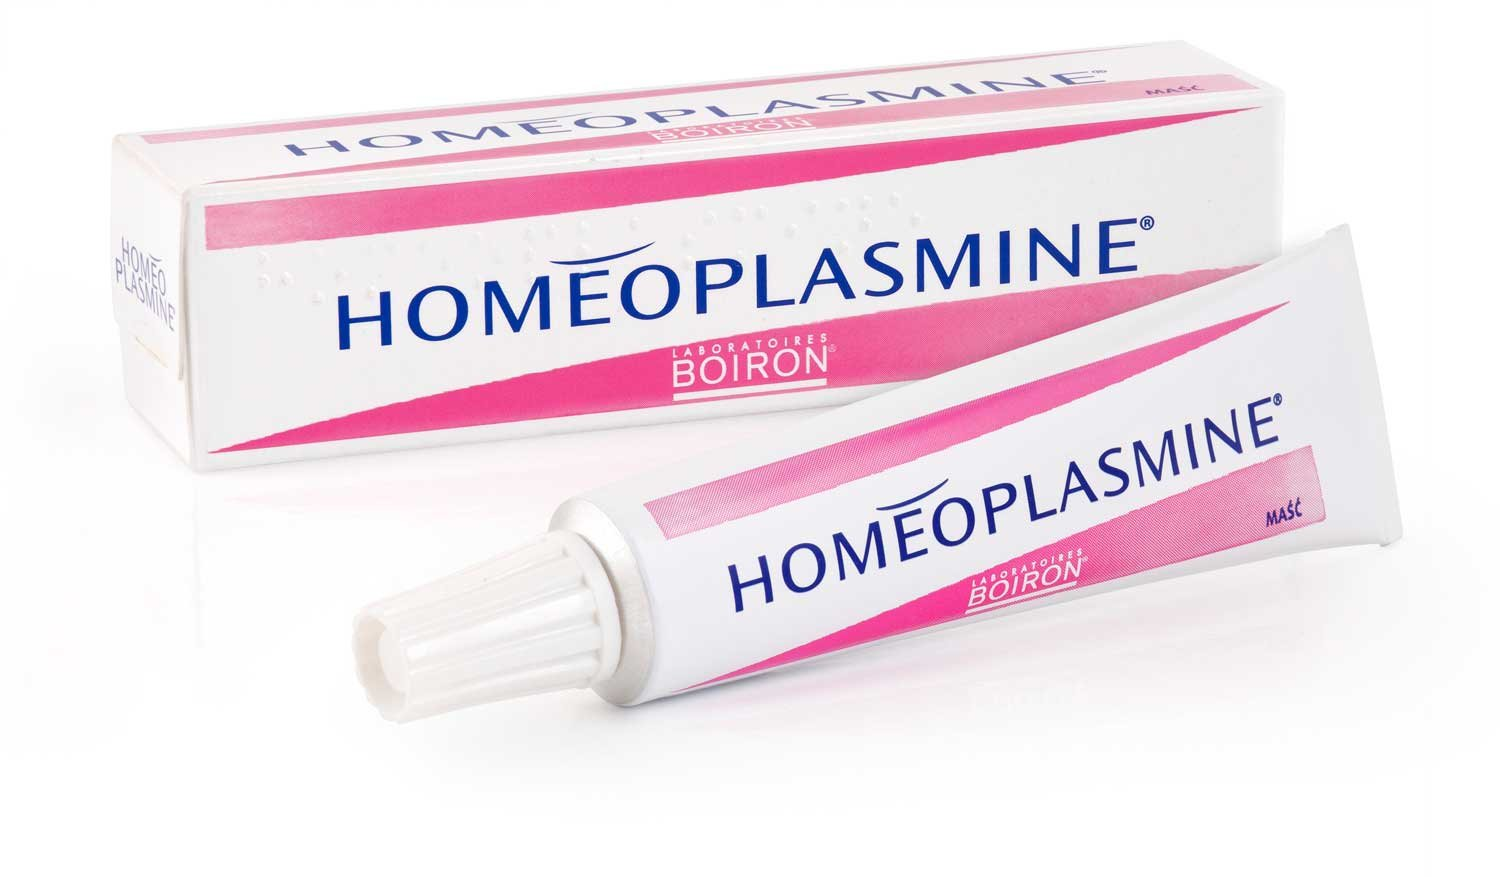 Homeoplasmine 18 Grams Make up artists secret weapon. by Homeoplasmine by Boiron